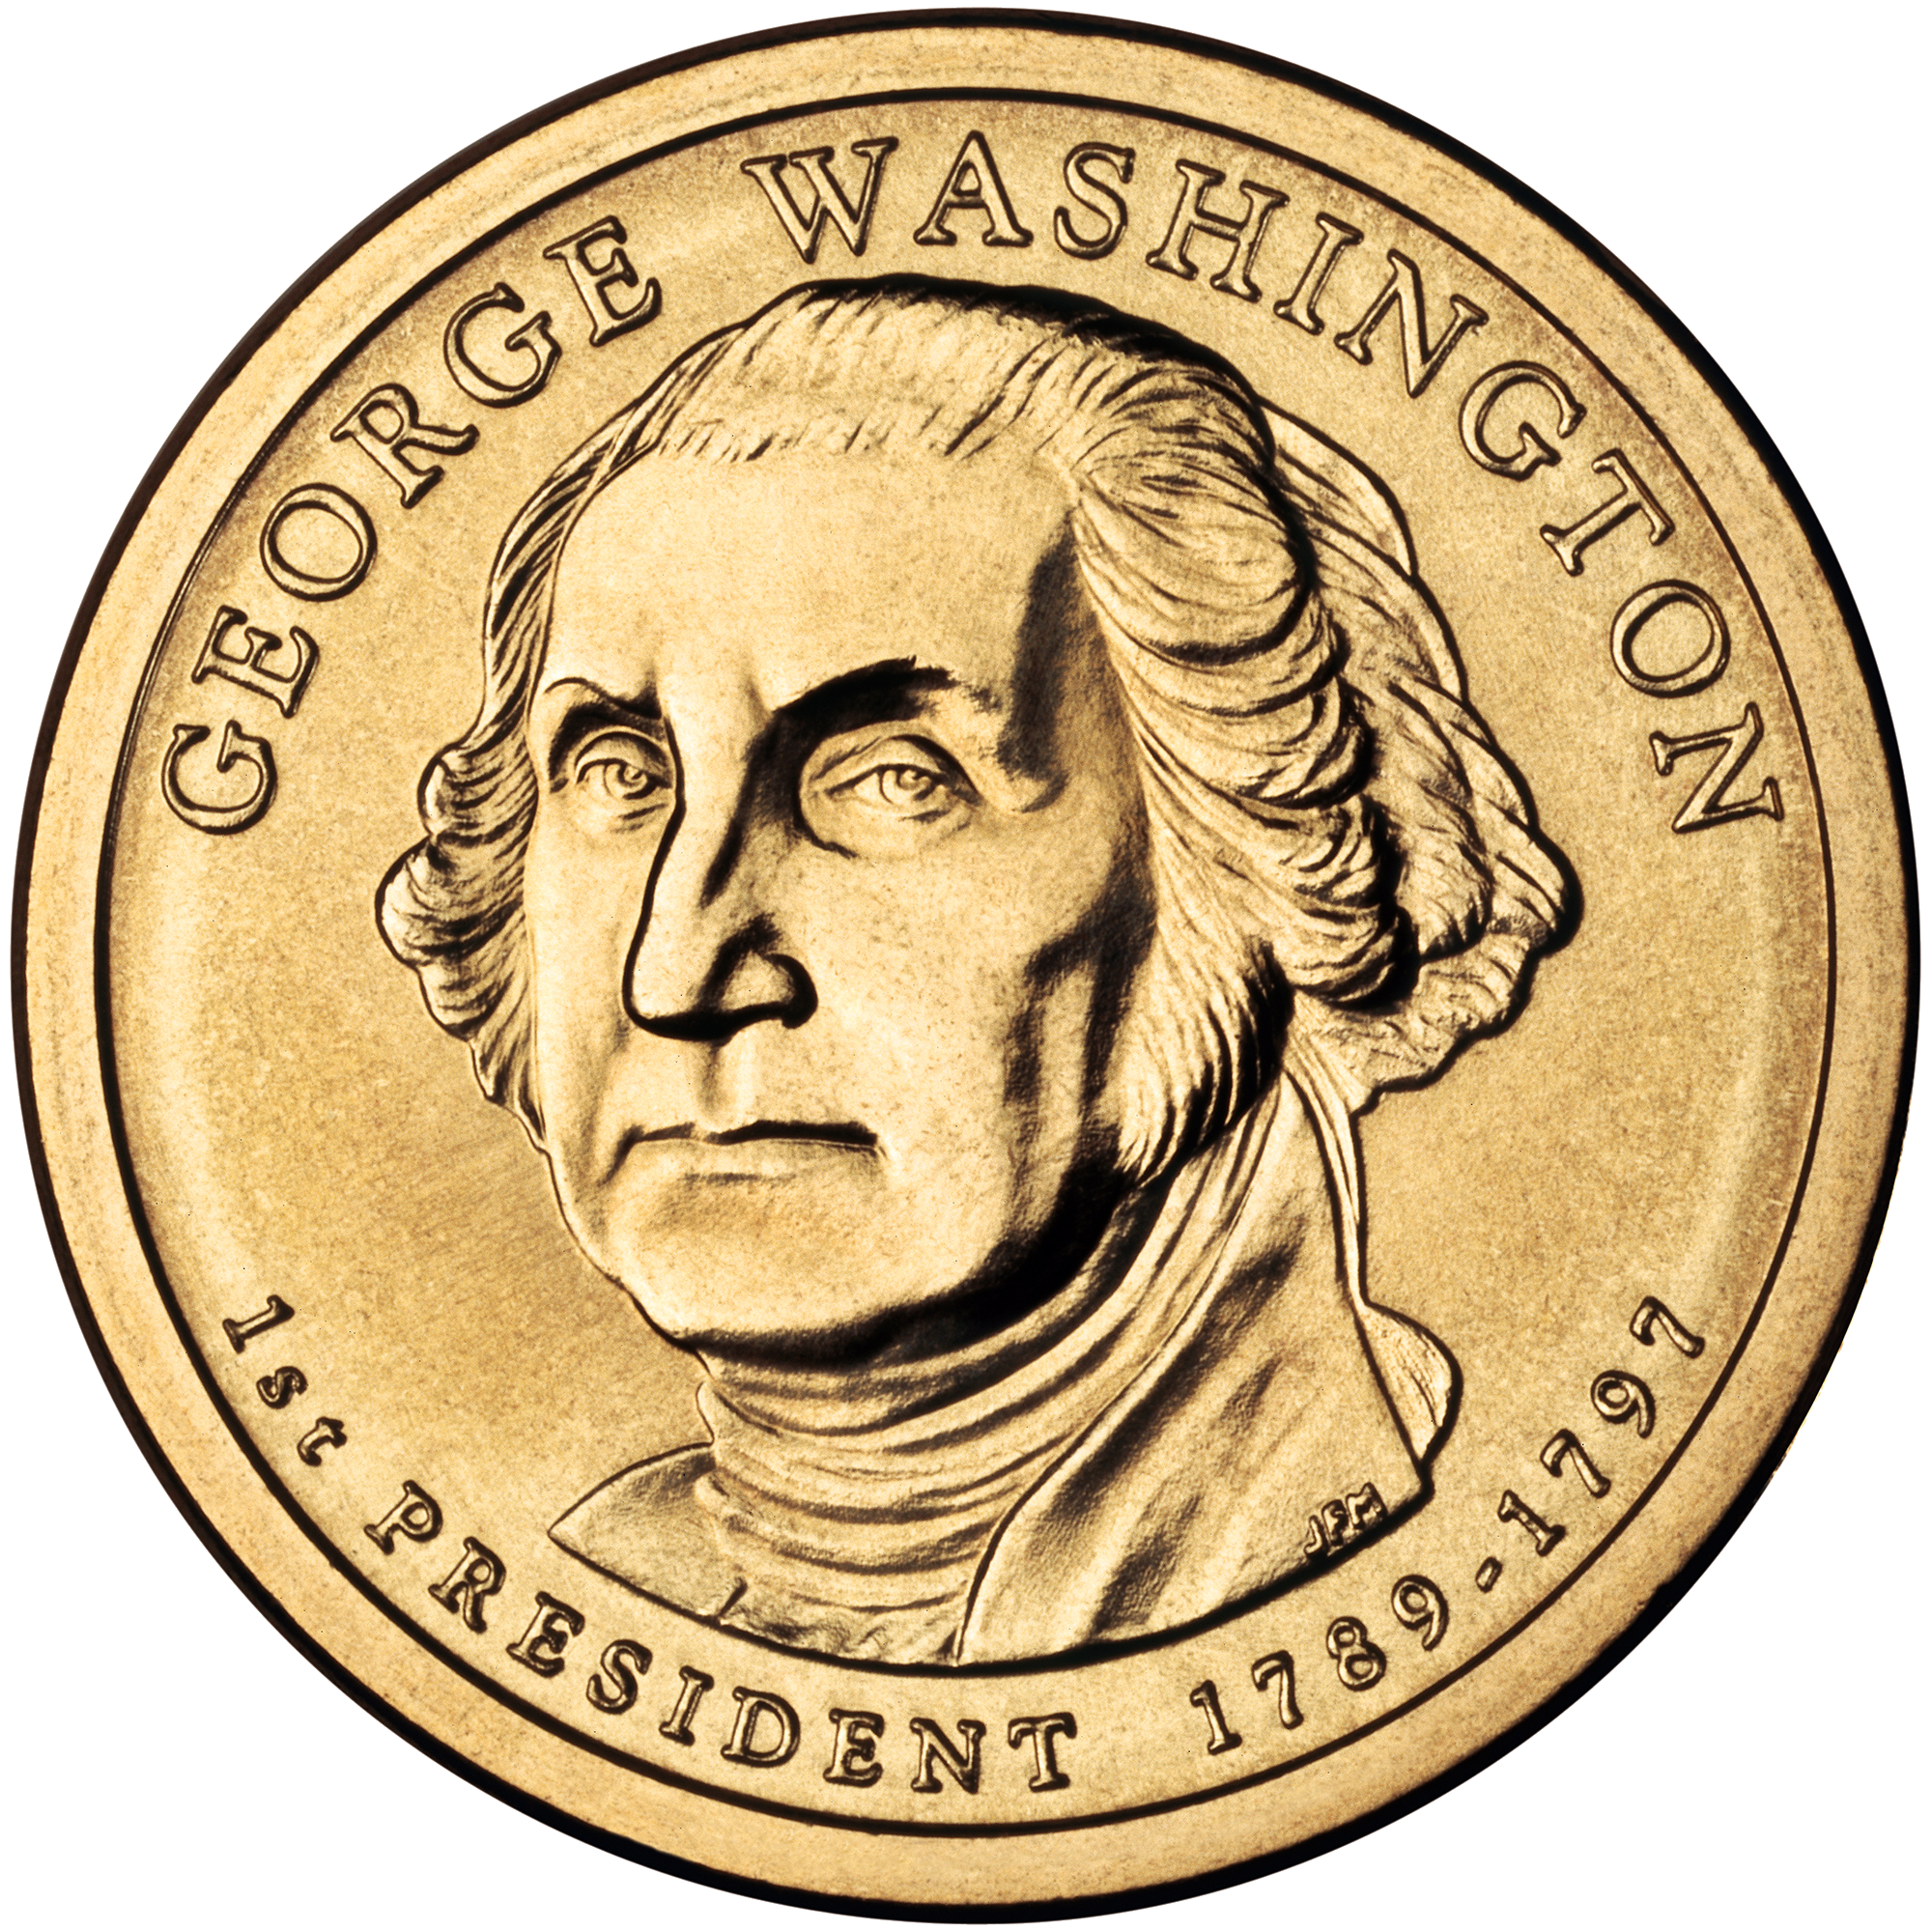 File:George Washington Presidential $1 Coin obverse.png ...